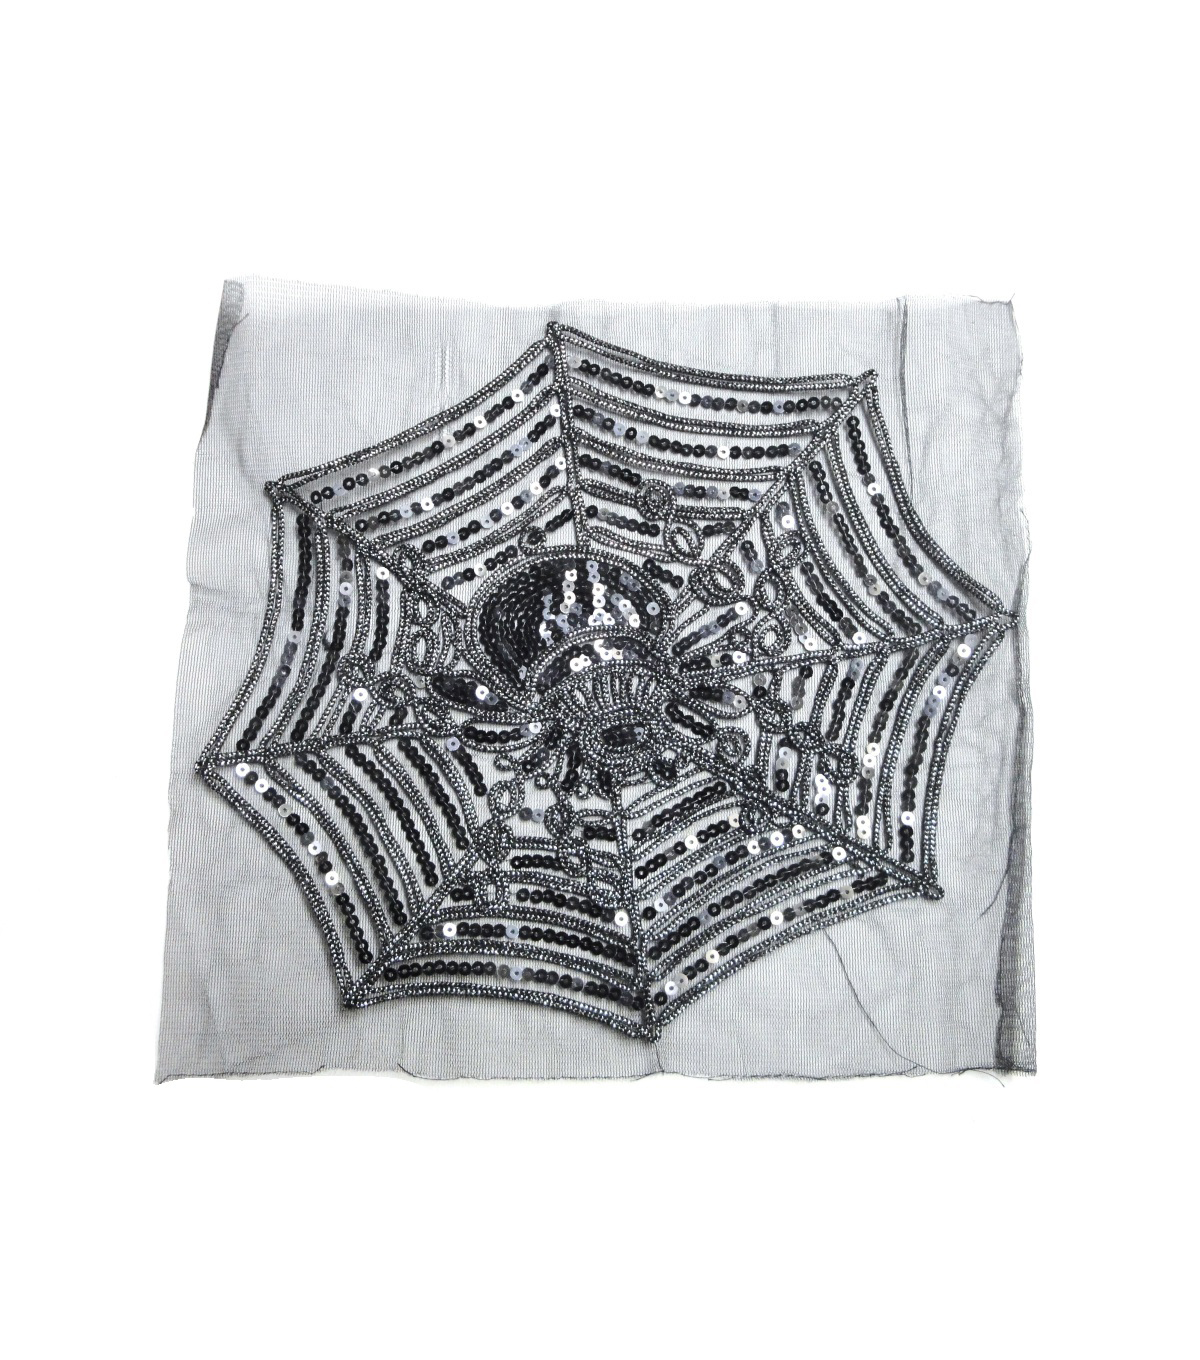 Halloween 15\u0027\u0027x11\u0027\u0027 Applique-Black & Silver Spider